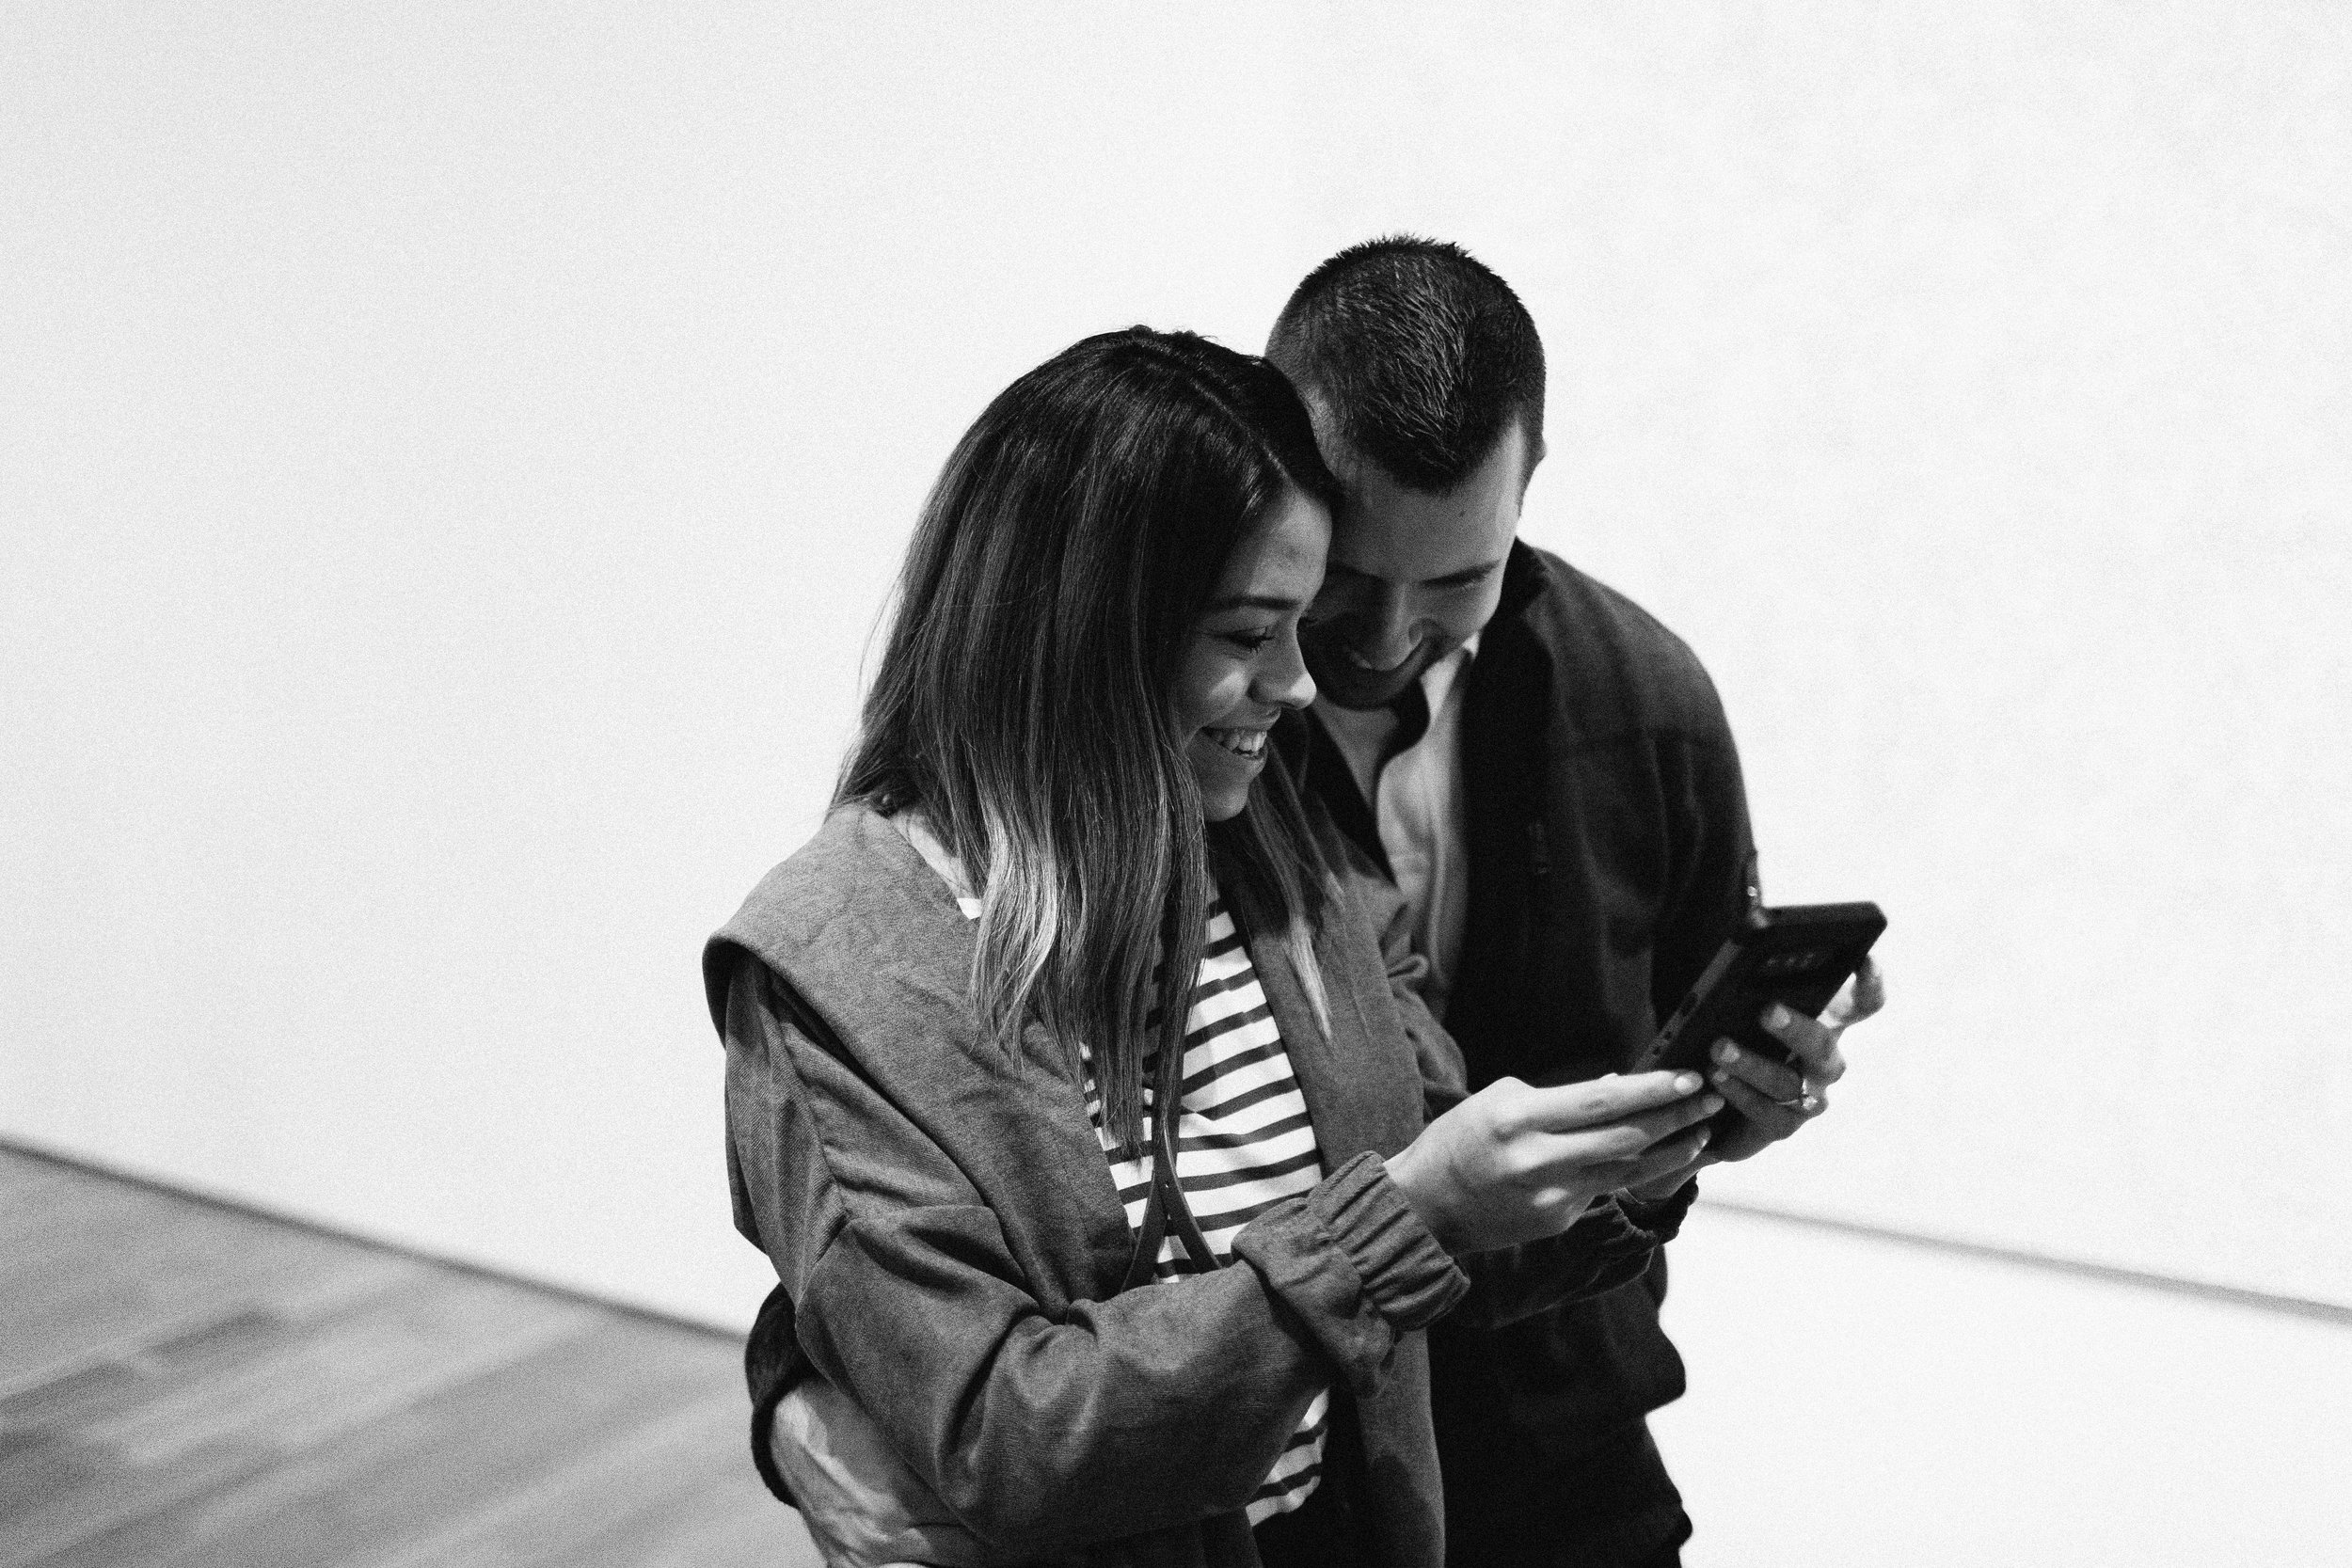 high_museum_infinity_mirrors_Yayoi_Kusama_proposal_amazing_atlanta_real_couple_engagement_ideas_epic_1108.jpg